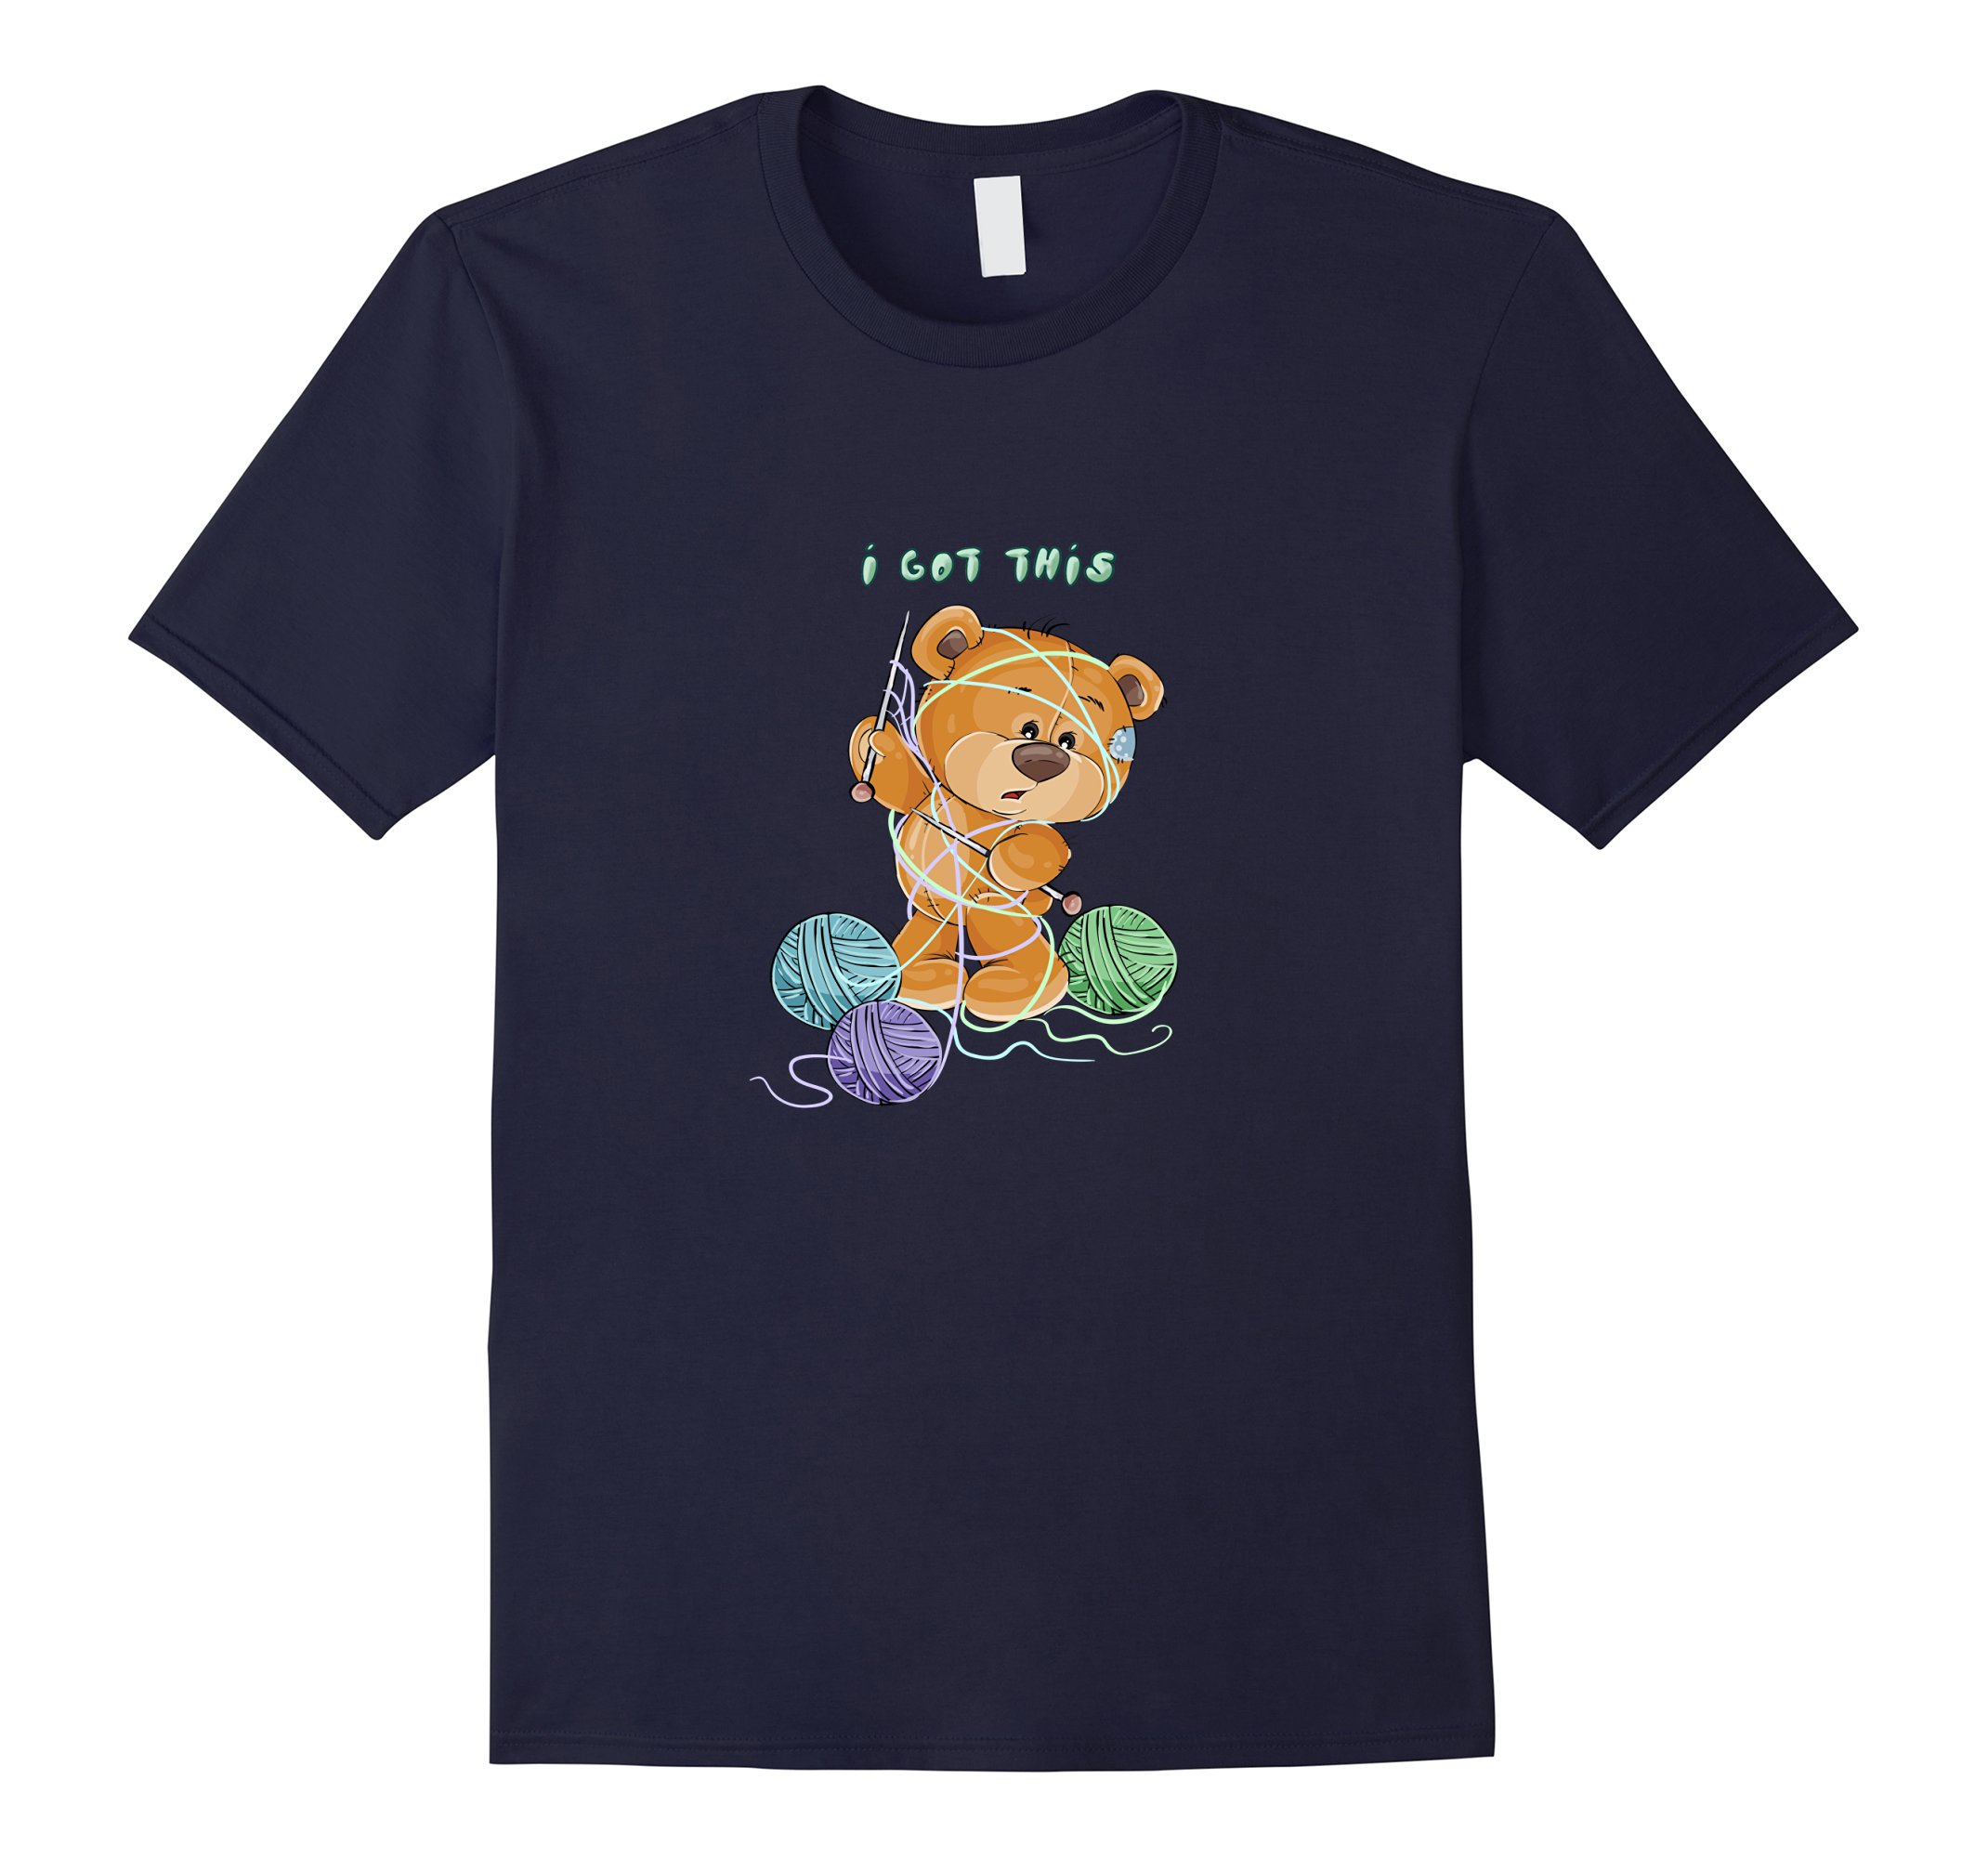 You Need This Teddy Bear Knitting T-Shirt, ?I Got This? ? Makes a Great Gift